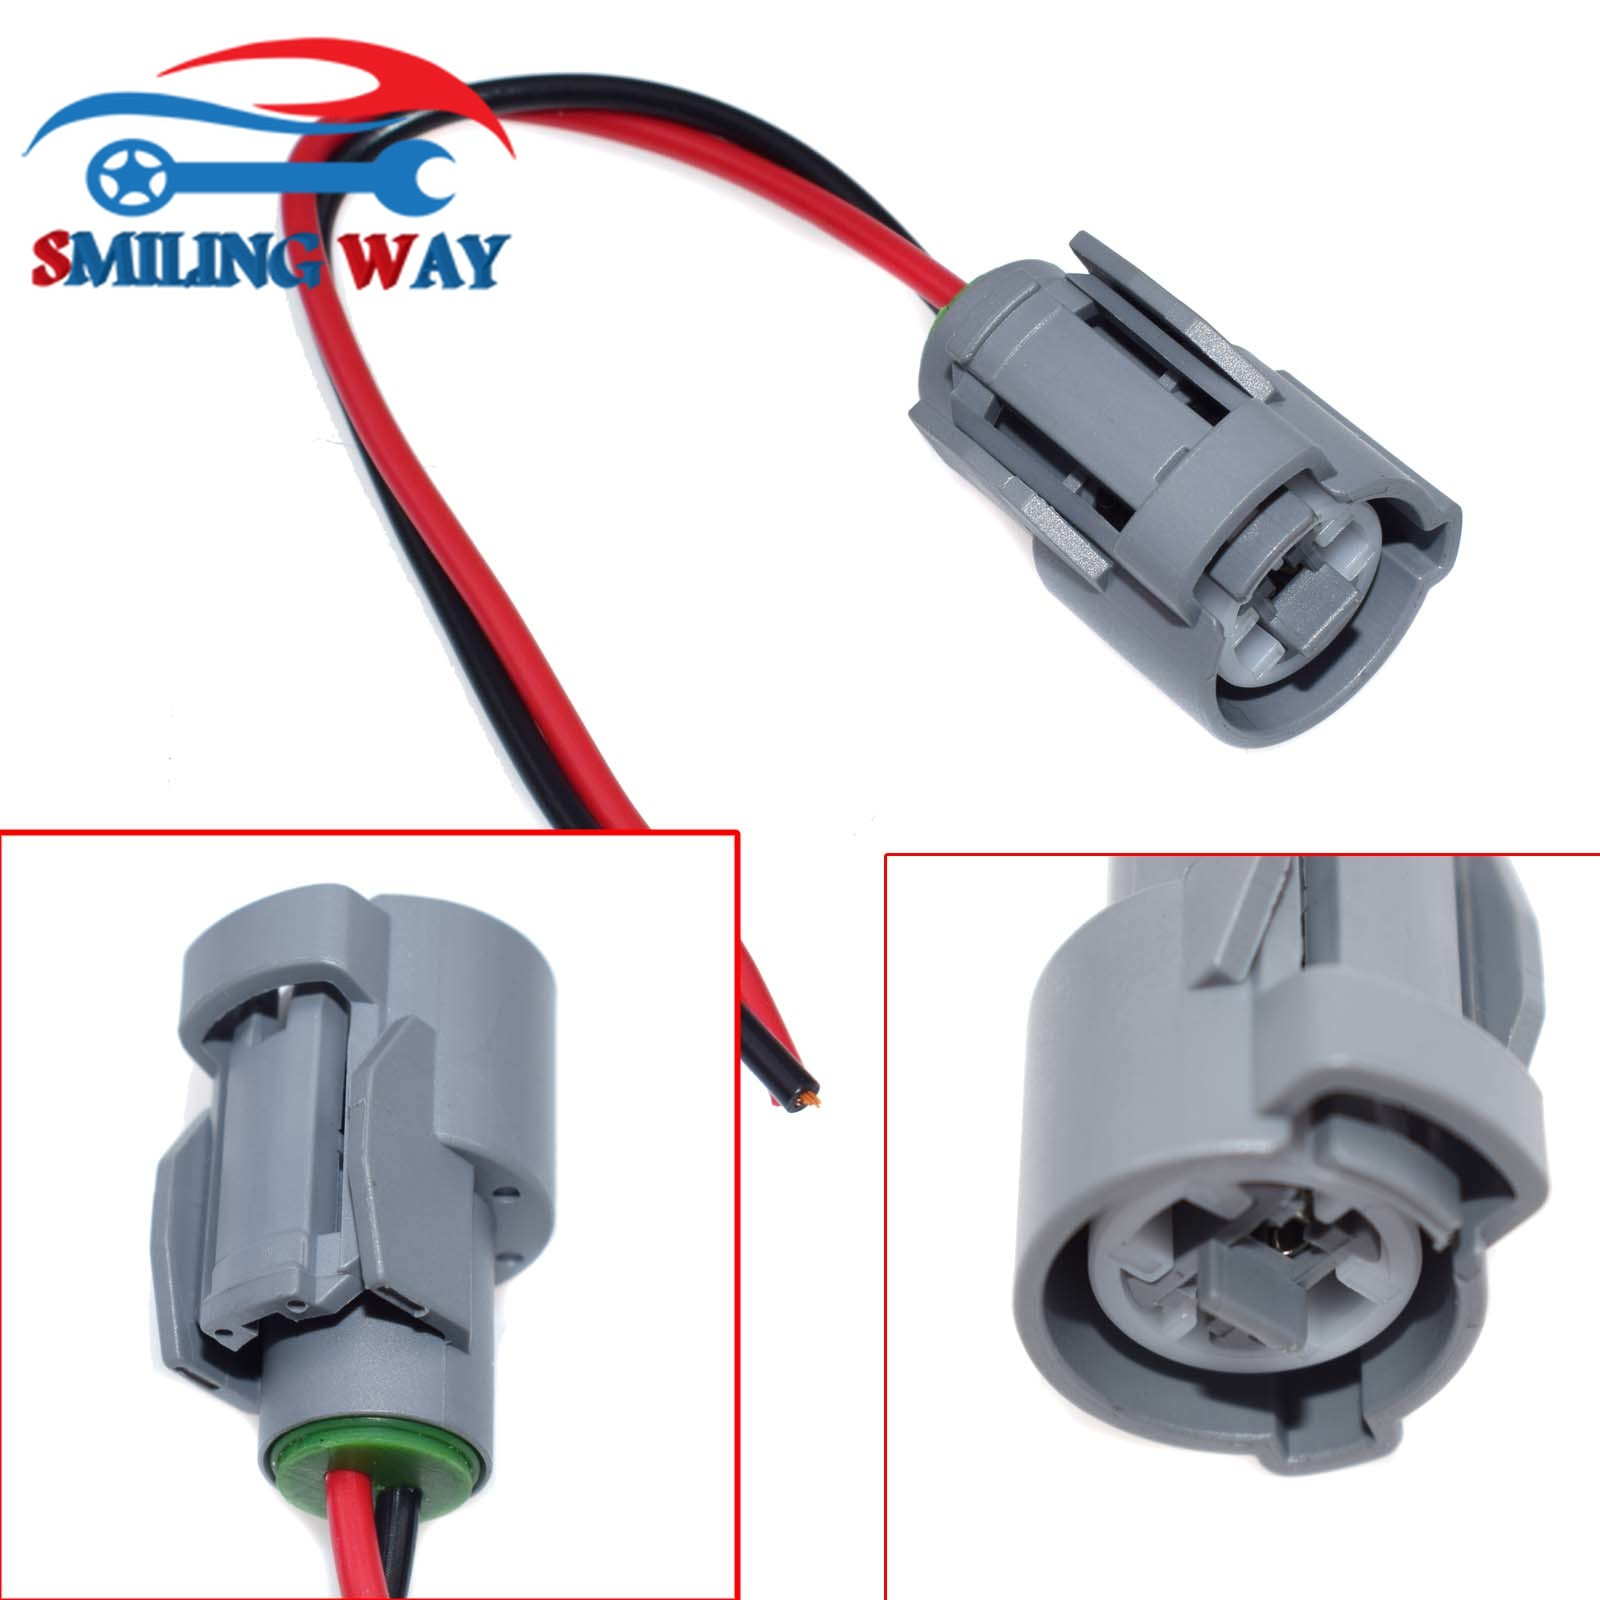 SMILING WAY# IAT ECT VTEC Sensor Connector Wire Harness Wiring Pigtail Plug  For Honda Acura Civic Element Pilot-in Fuel Inject.